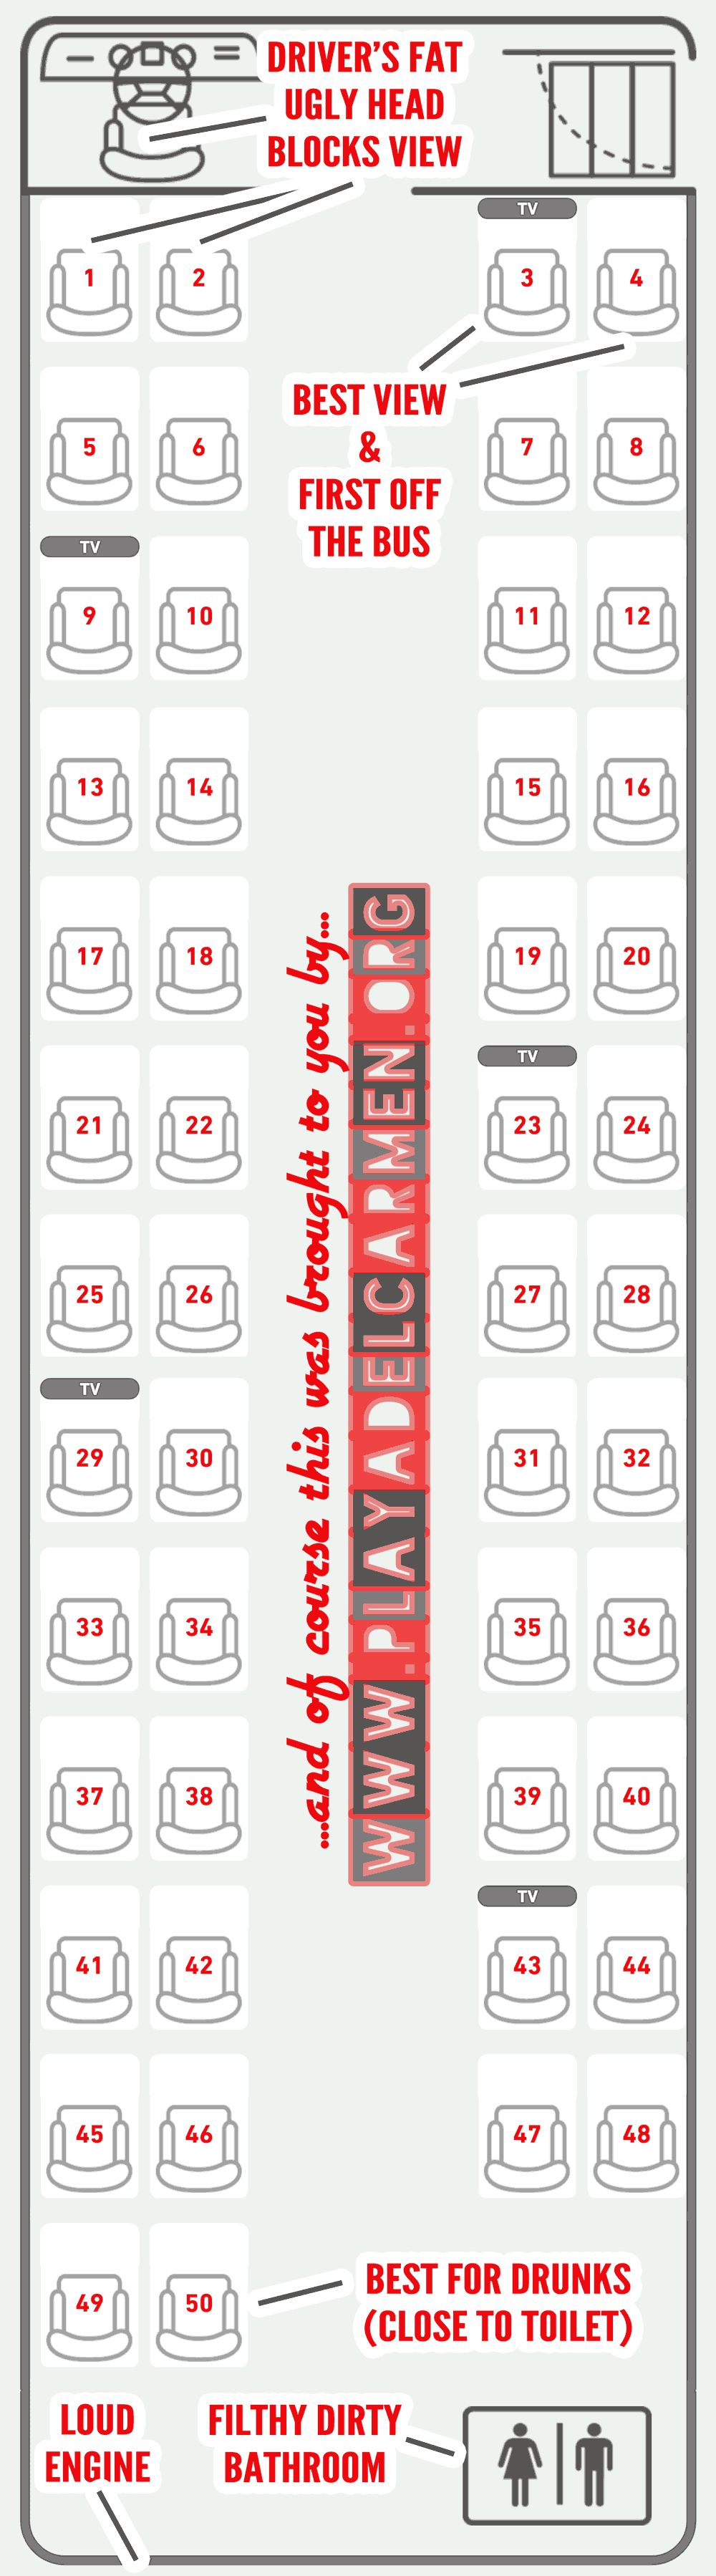 An bus seating chart showing how ADO bus seats are numbered.